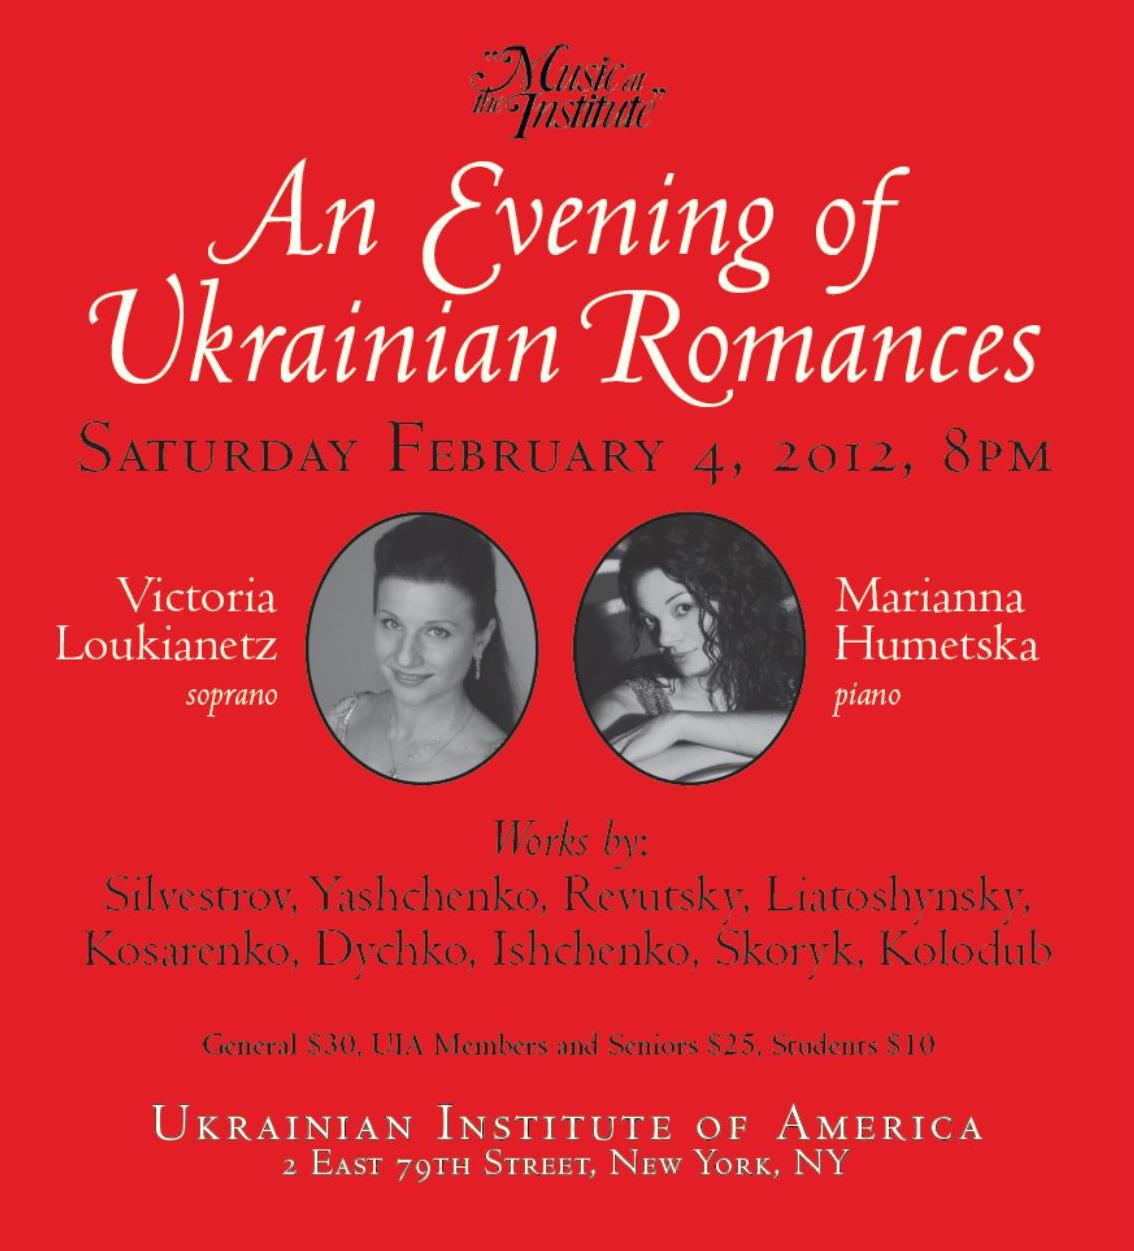 6 MATI February 4, 2012, An Evening of Ukrainian Romances, 02.04.12